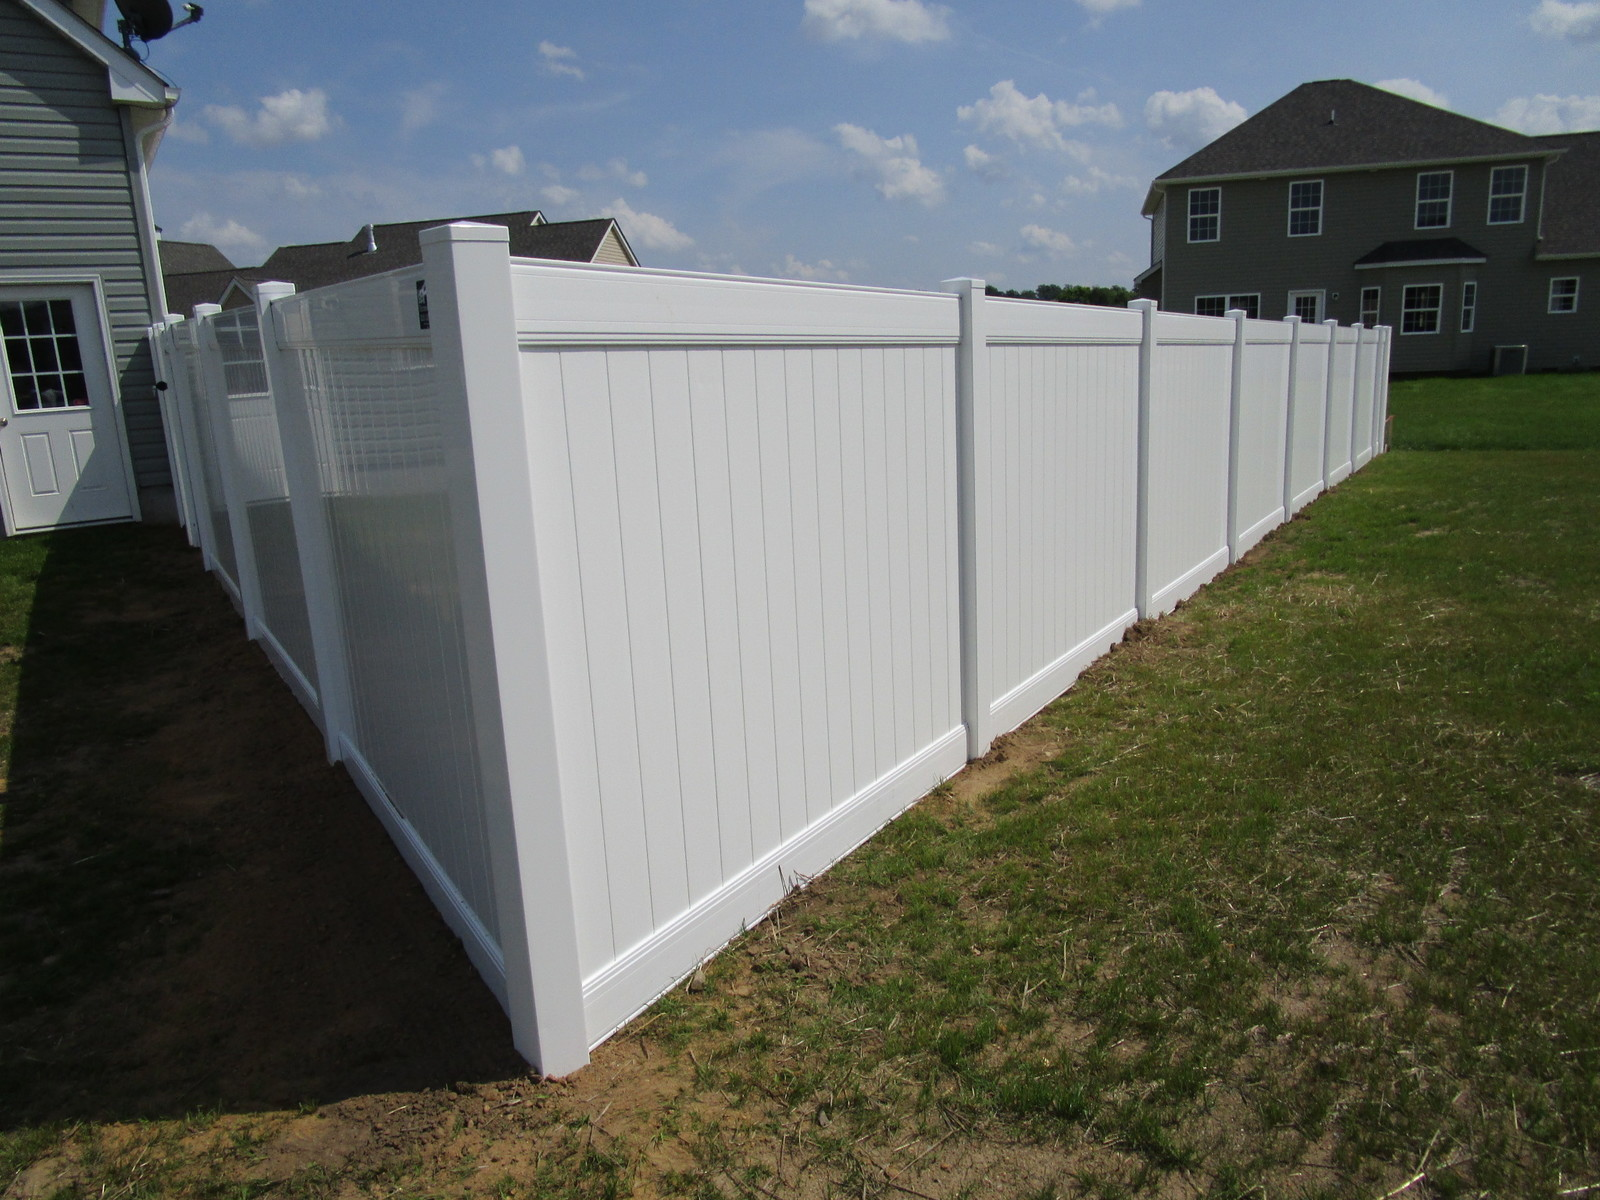 Vinyl Forrest Fencing Fence Gate For Transitional Putting Up Electric 108 Privacy White Penndel